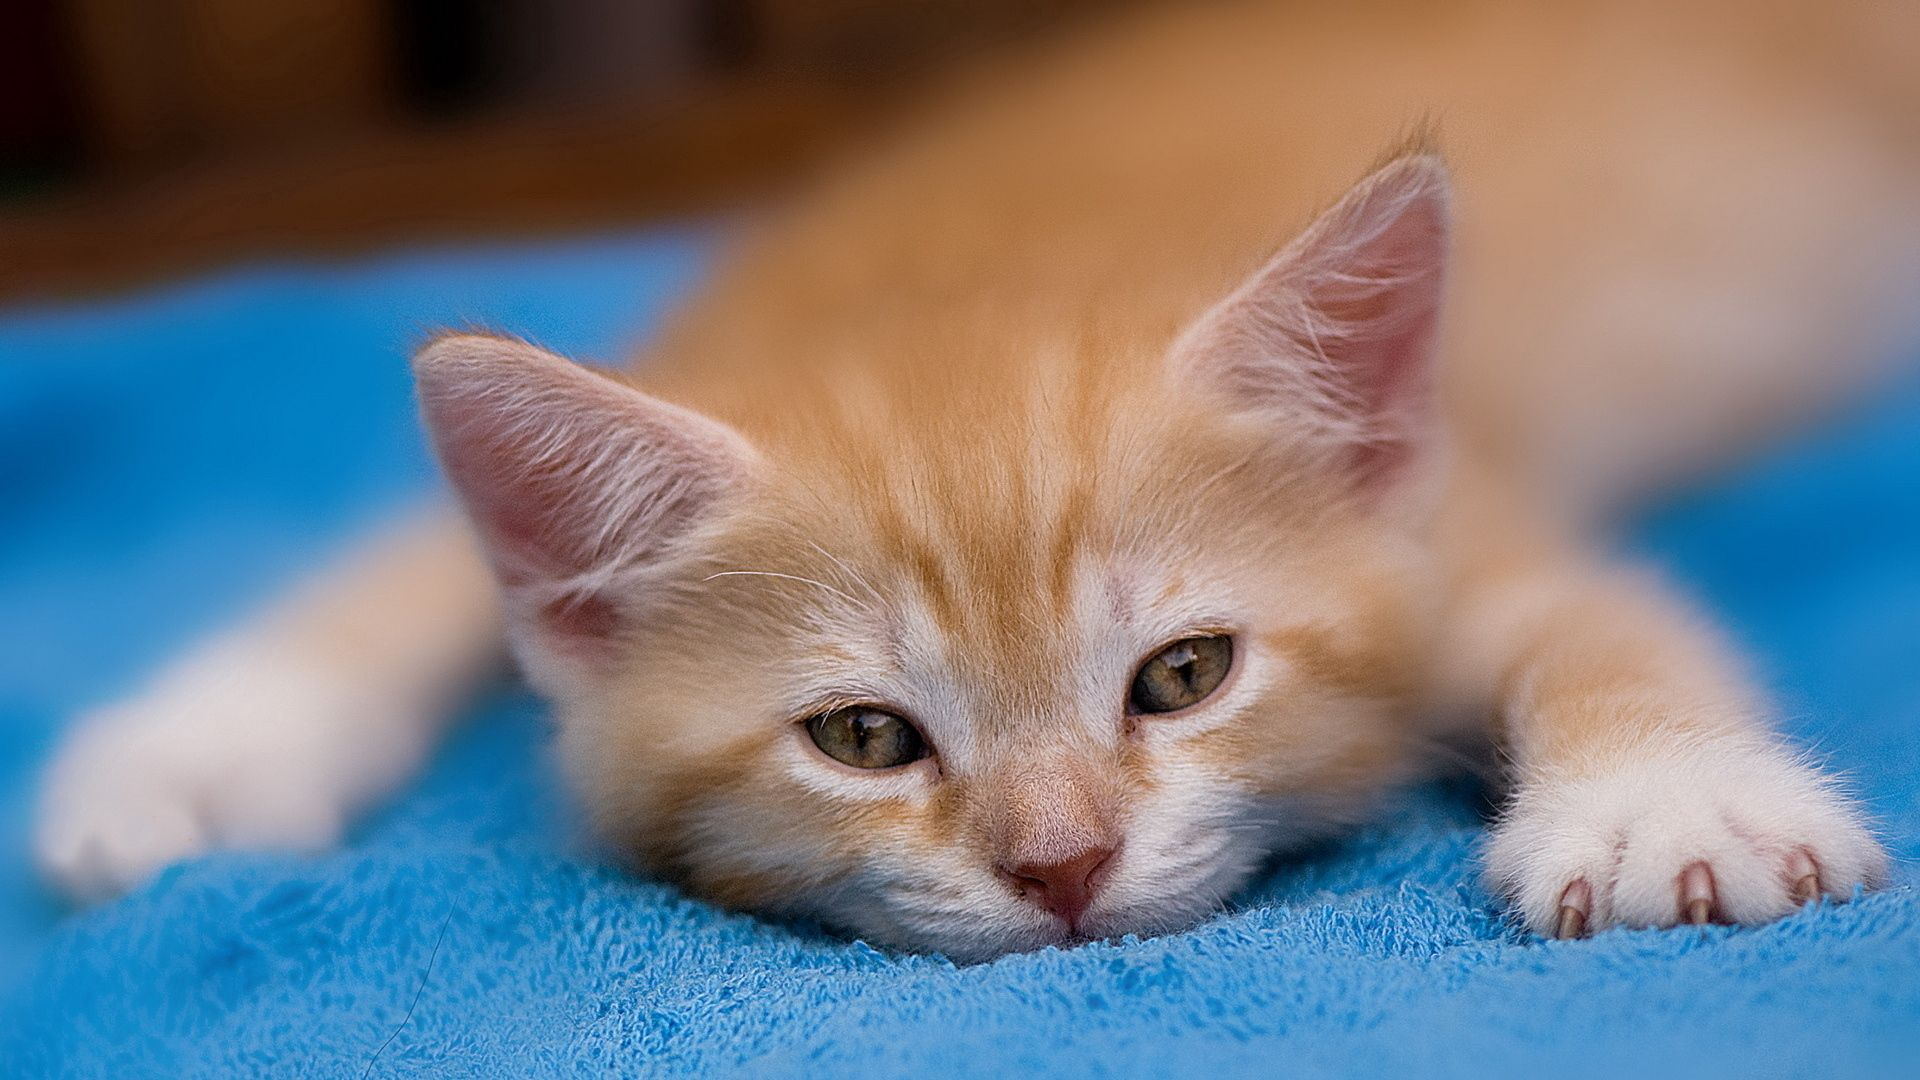 63749 download wallpaper Animals, Kitty, Kitten, Redhead, Sleep, Dream screensavers and pictures for free